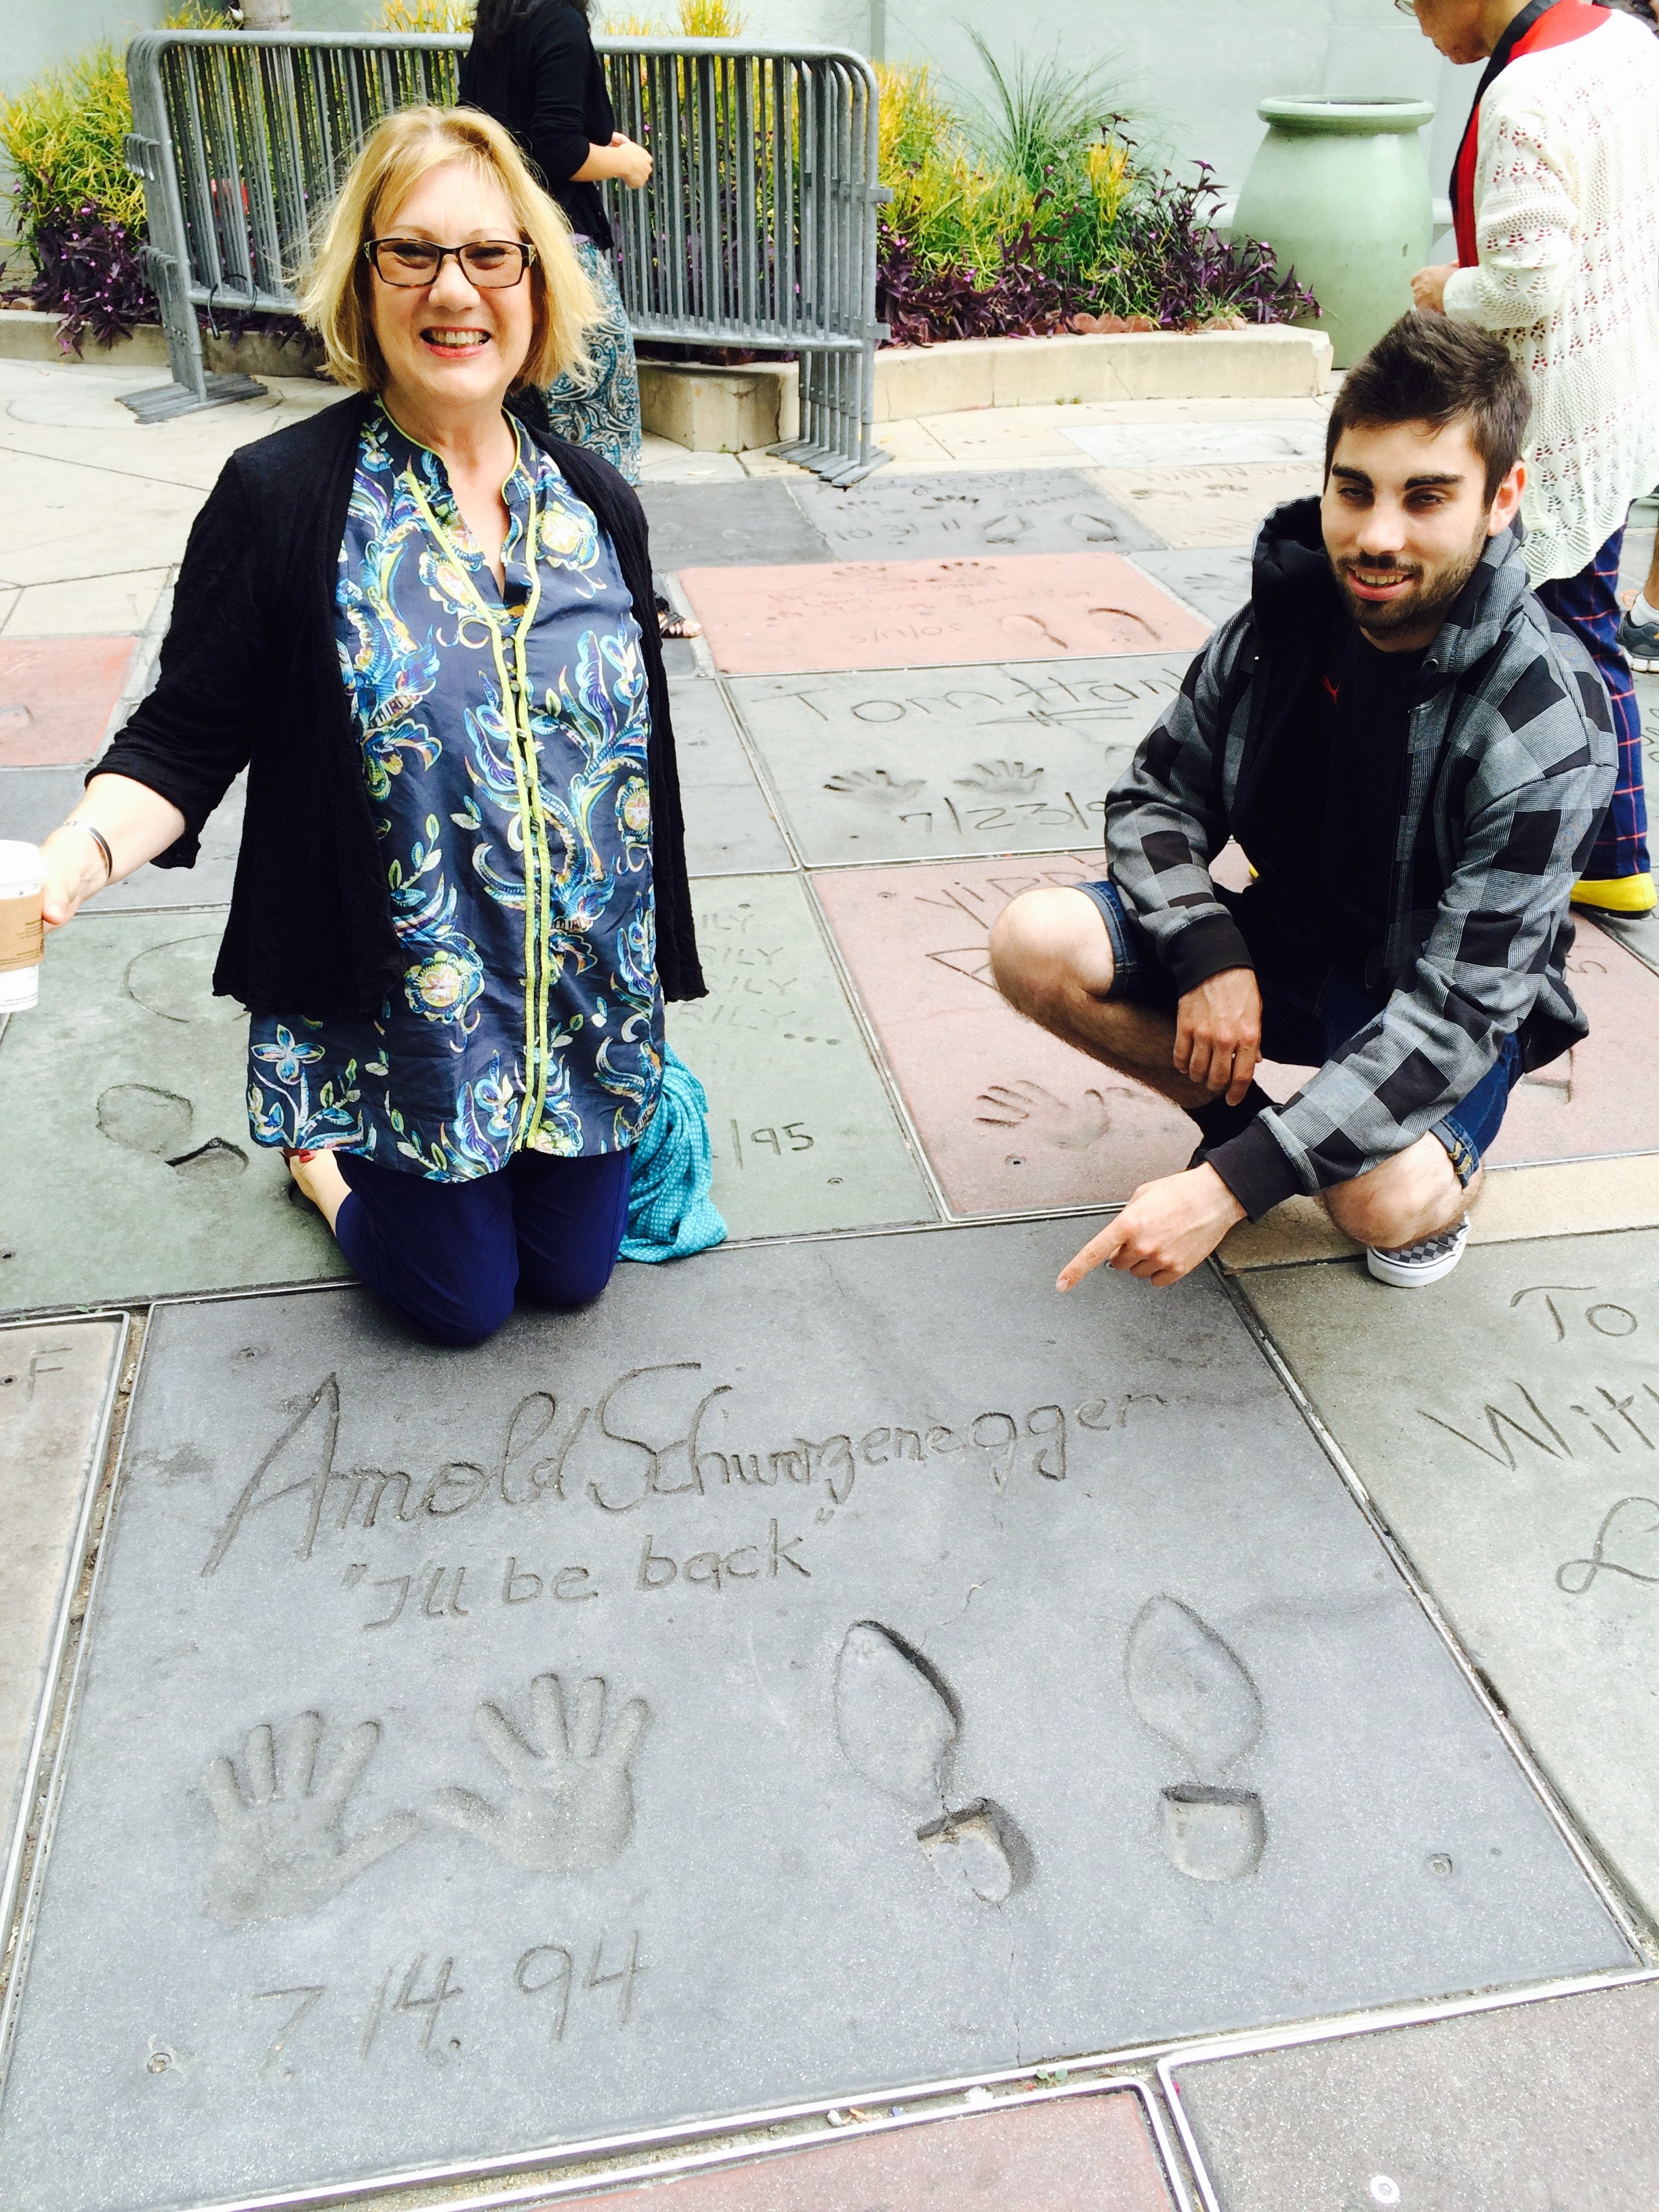 Couple at Schwarzenegger handprints